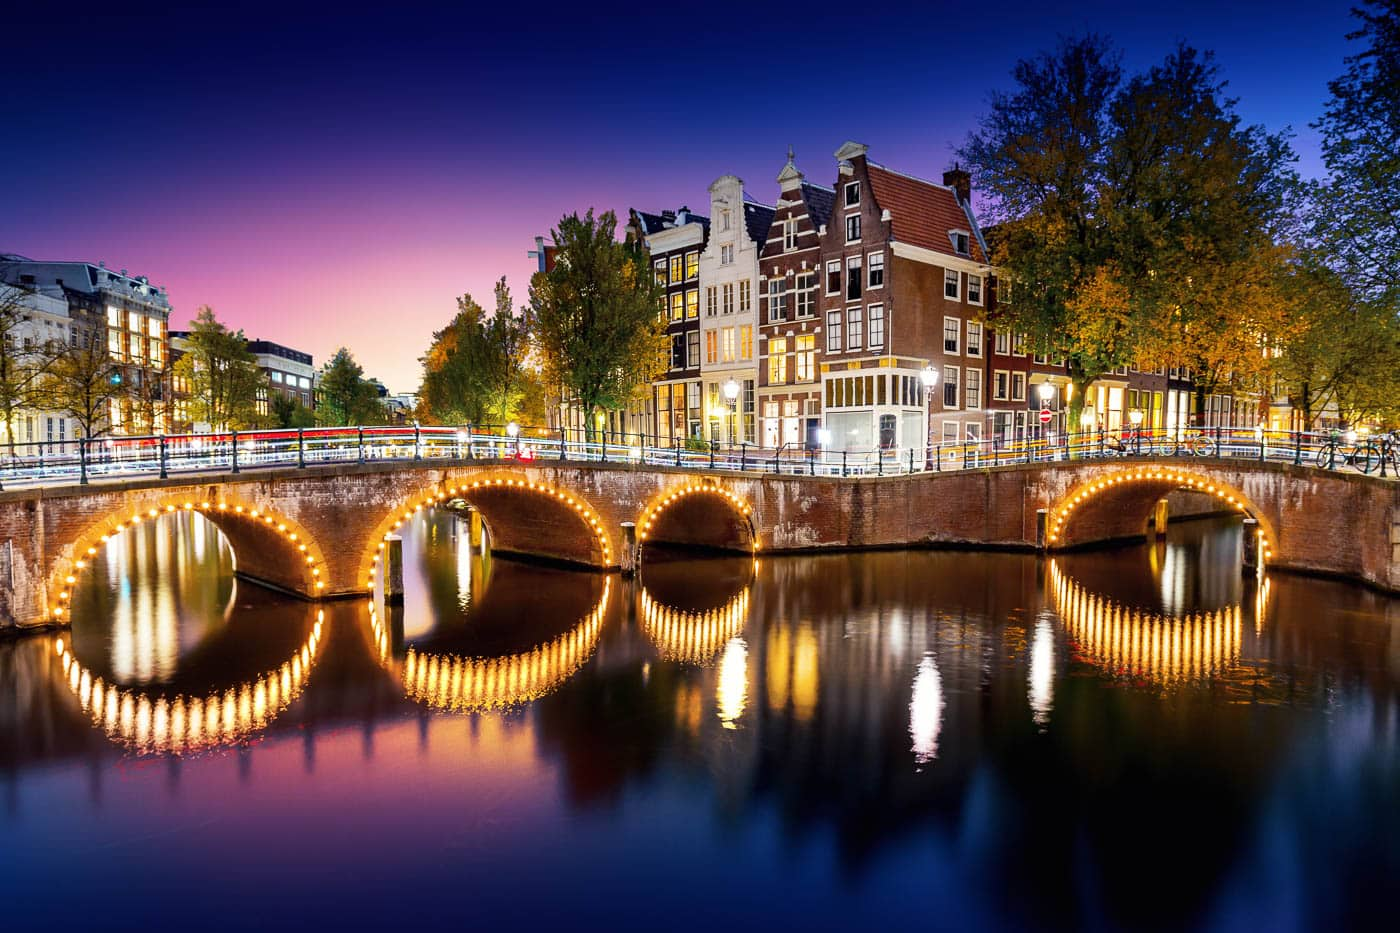 Amsterdam Keizersgracht bridges at night